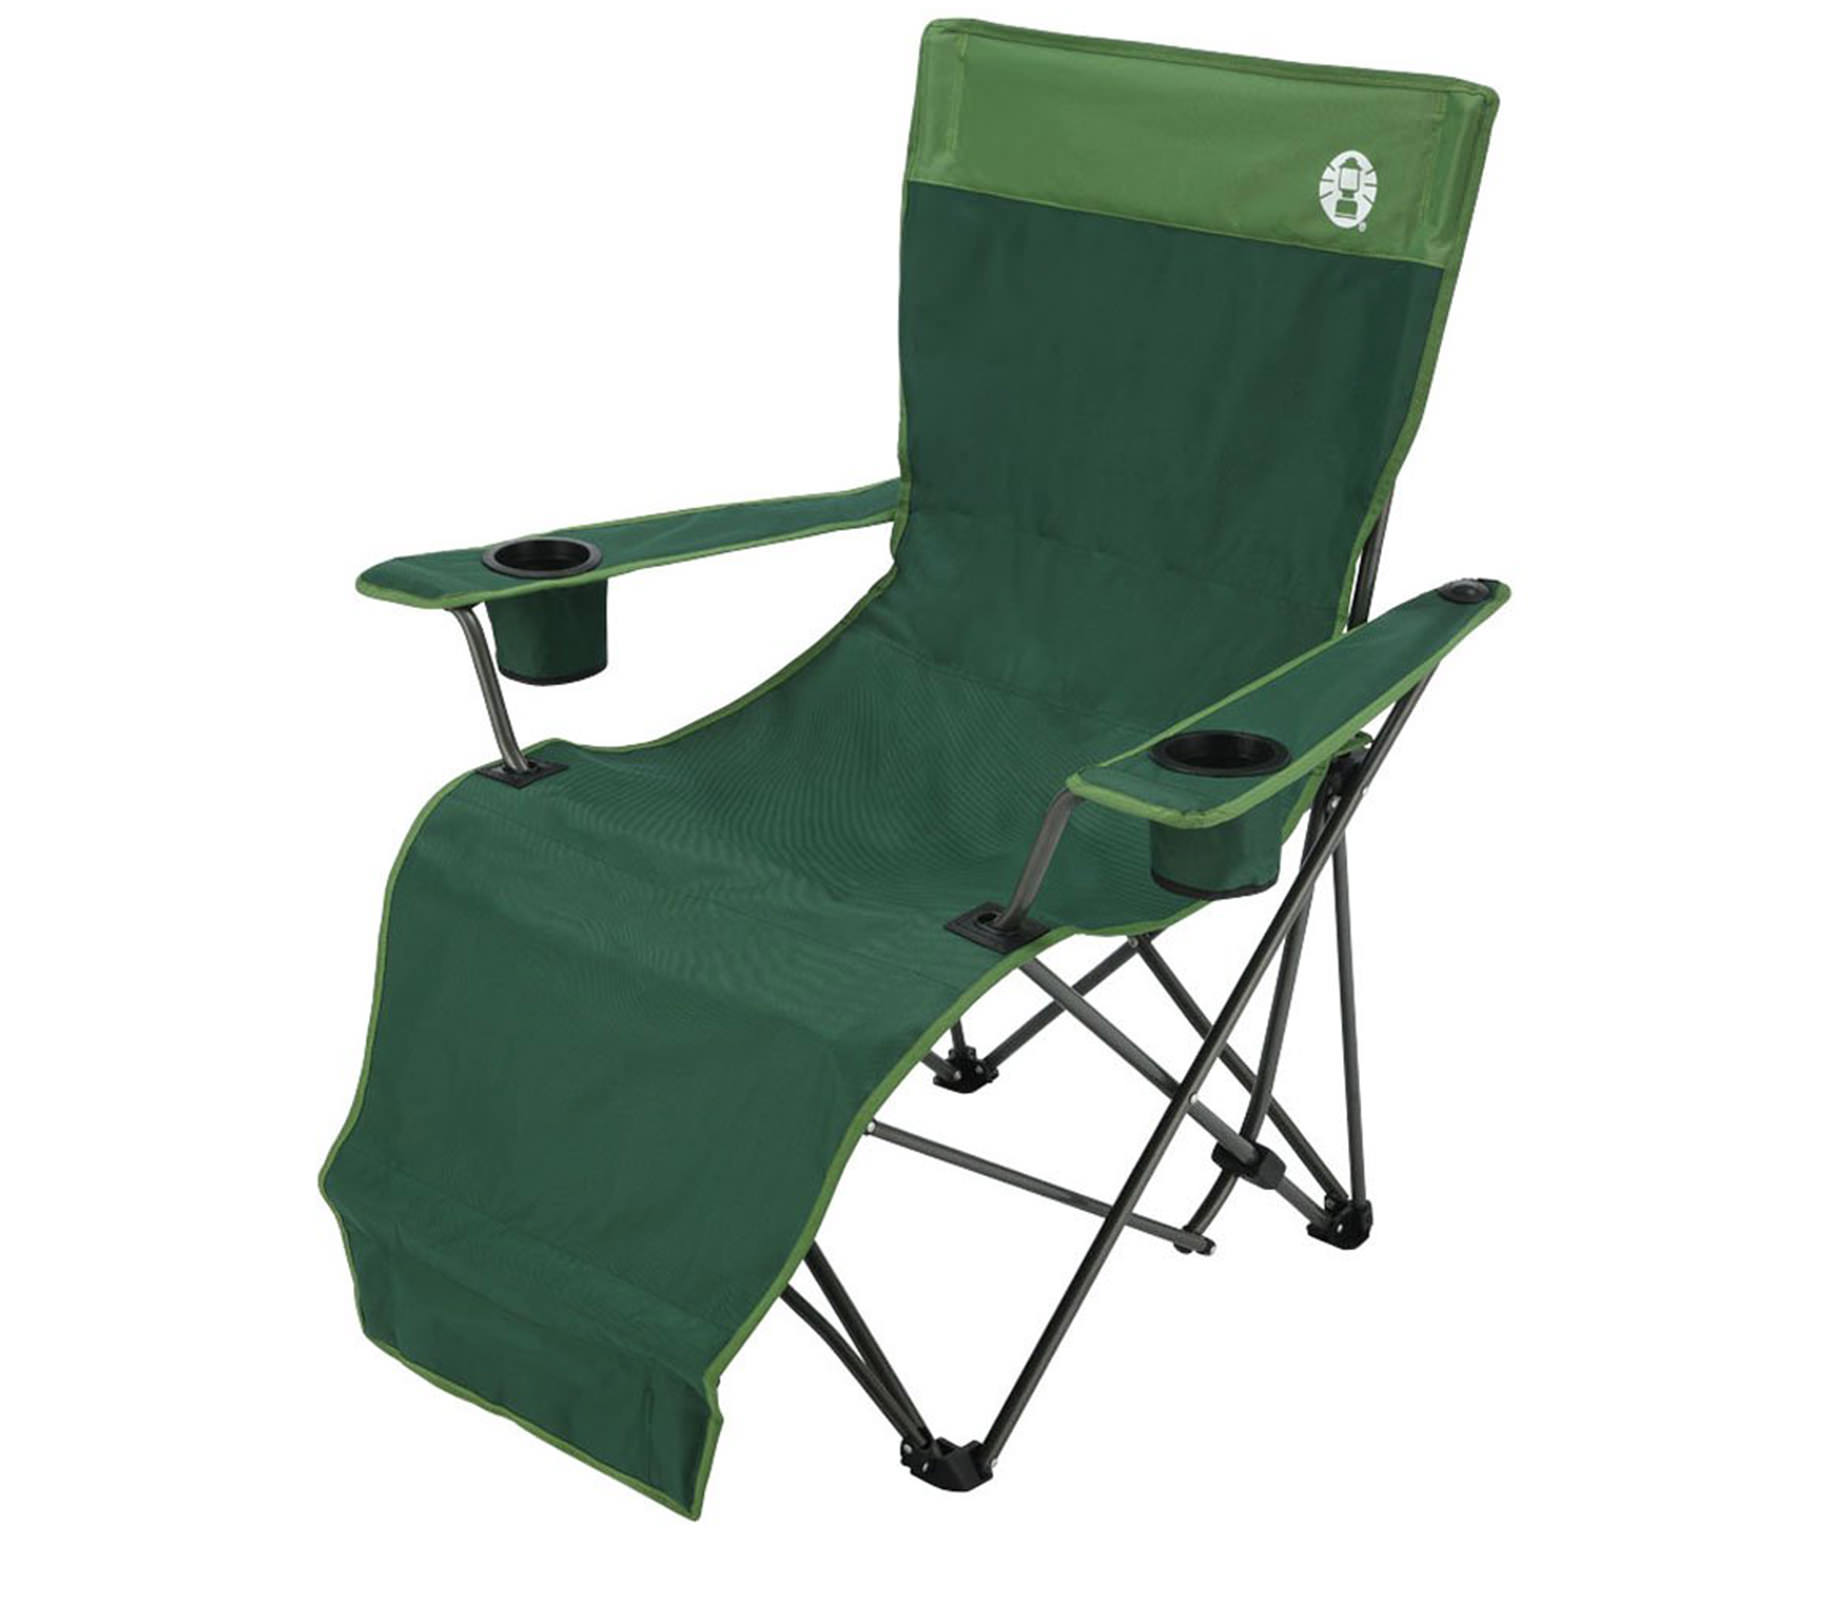 ghe-gap-coleman-easy-lift-chair-steel-green-2000010499-7460-wetrek_vn